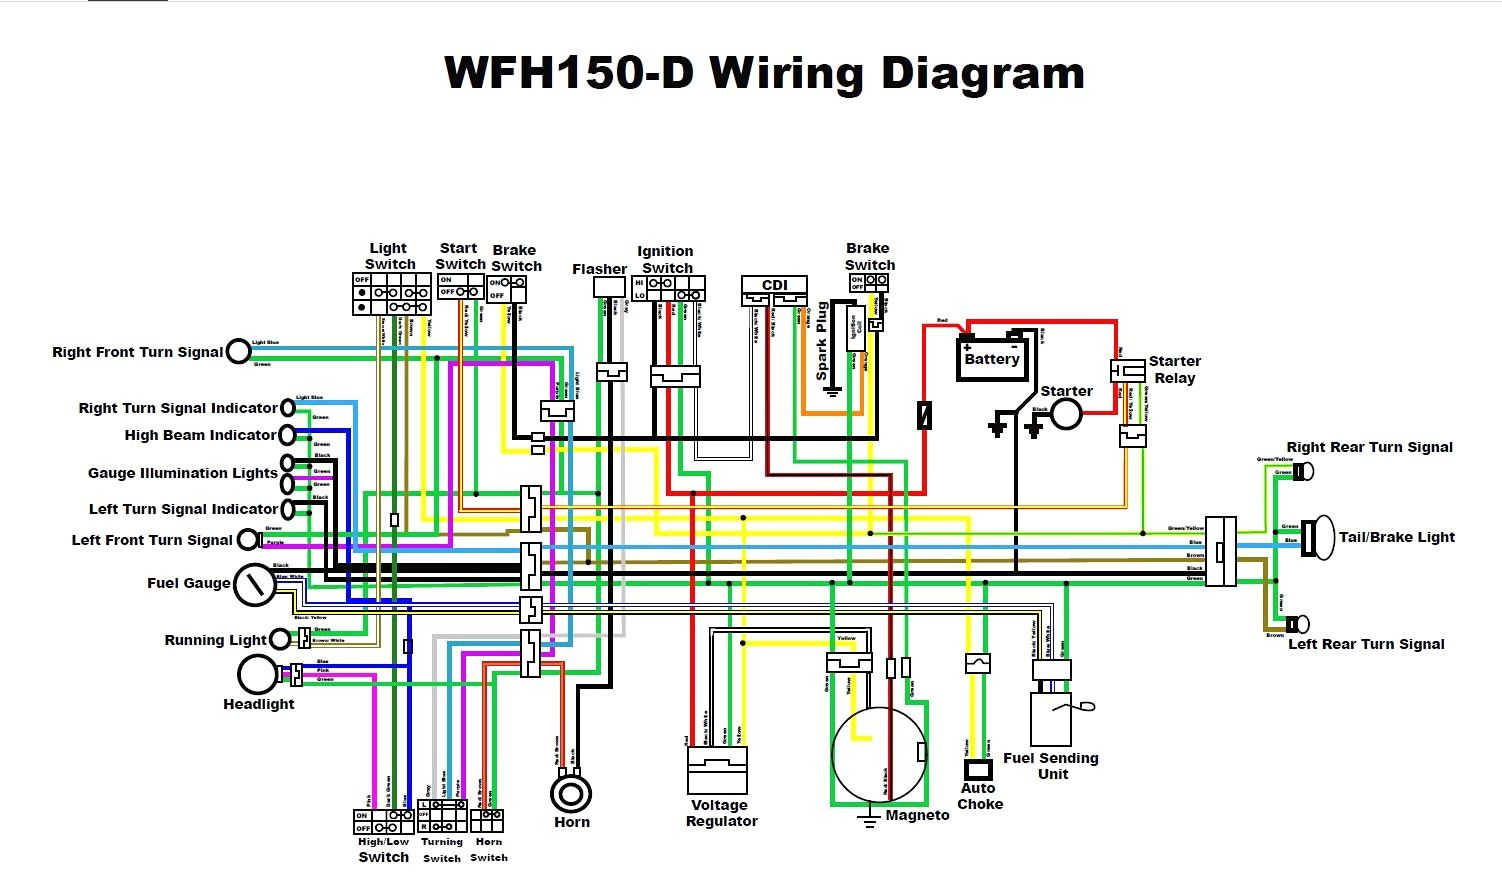 150cc Atv Wiring Diagram - Go Wiring Diagram on 200cc enduro dirt bike, lightest 250 dirt bike, zongshen 200 dirt bike, ktm electric dirt bike, ktm 70cc dirt bike, zongshen 125cc dirt bike black, baja warrior 90cc dirt bike, ktm 450cc dirt bike, baja 150cc dirt bike, zongshen motorcycle, loncin 110 dirt bike,